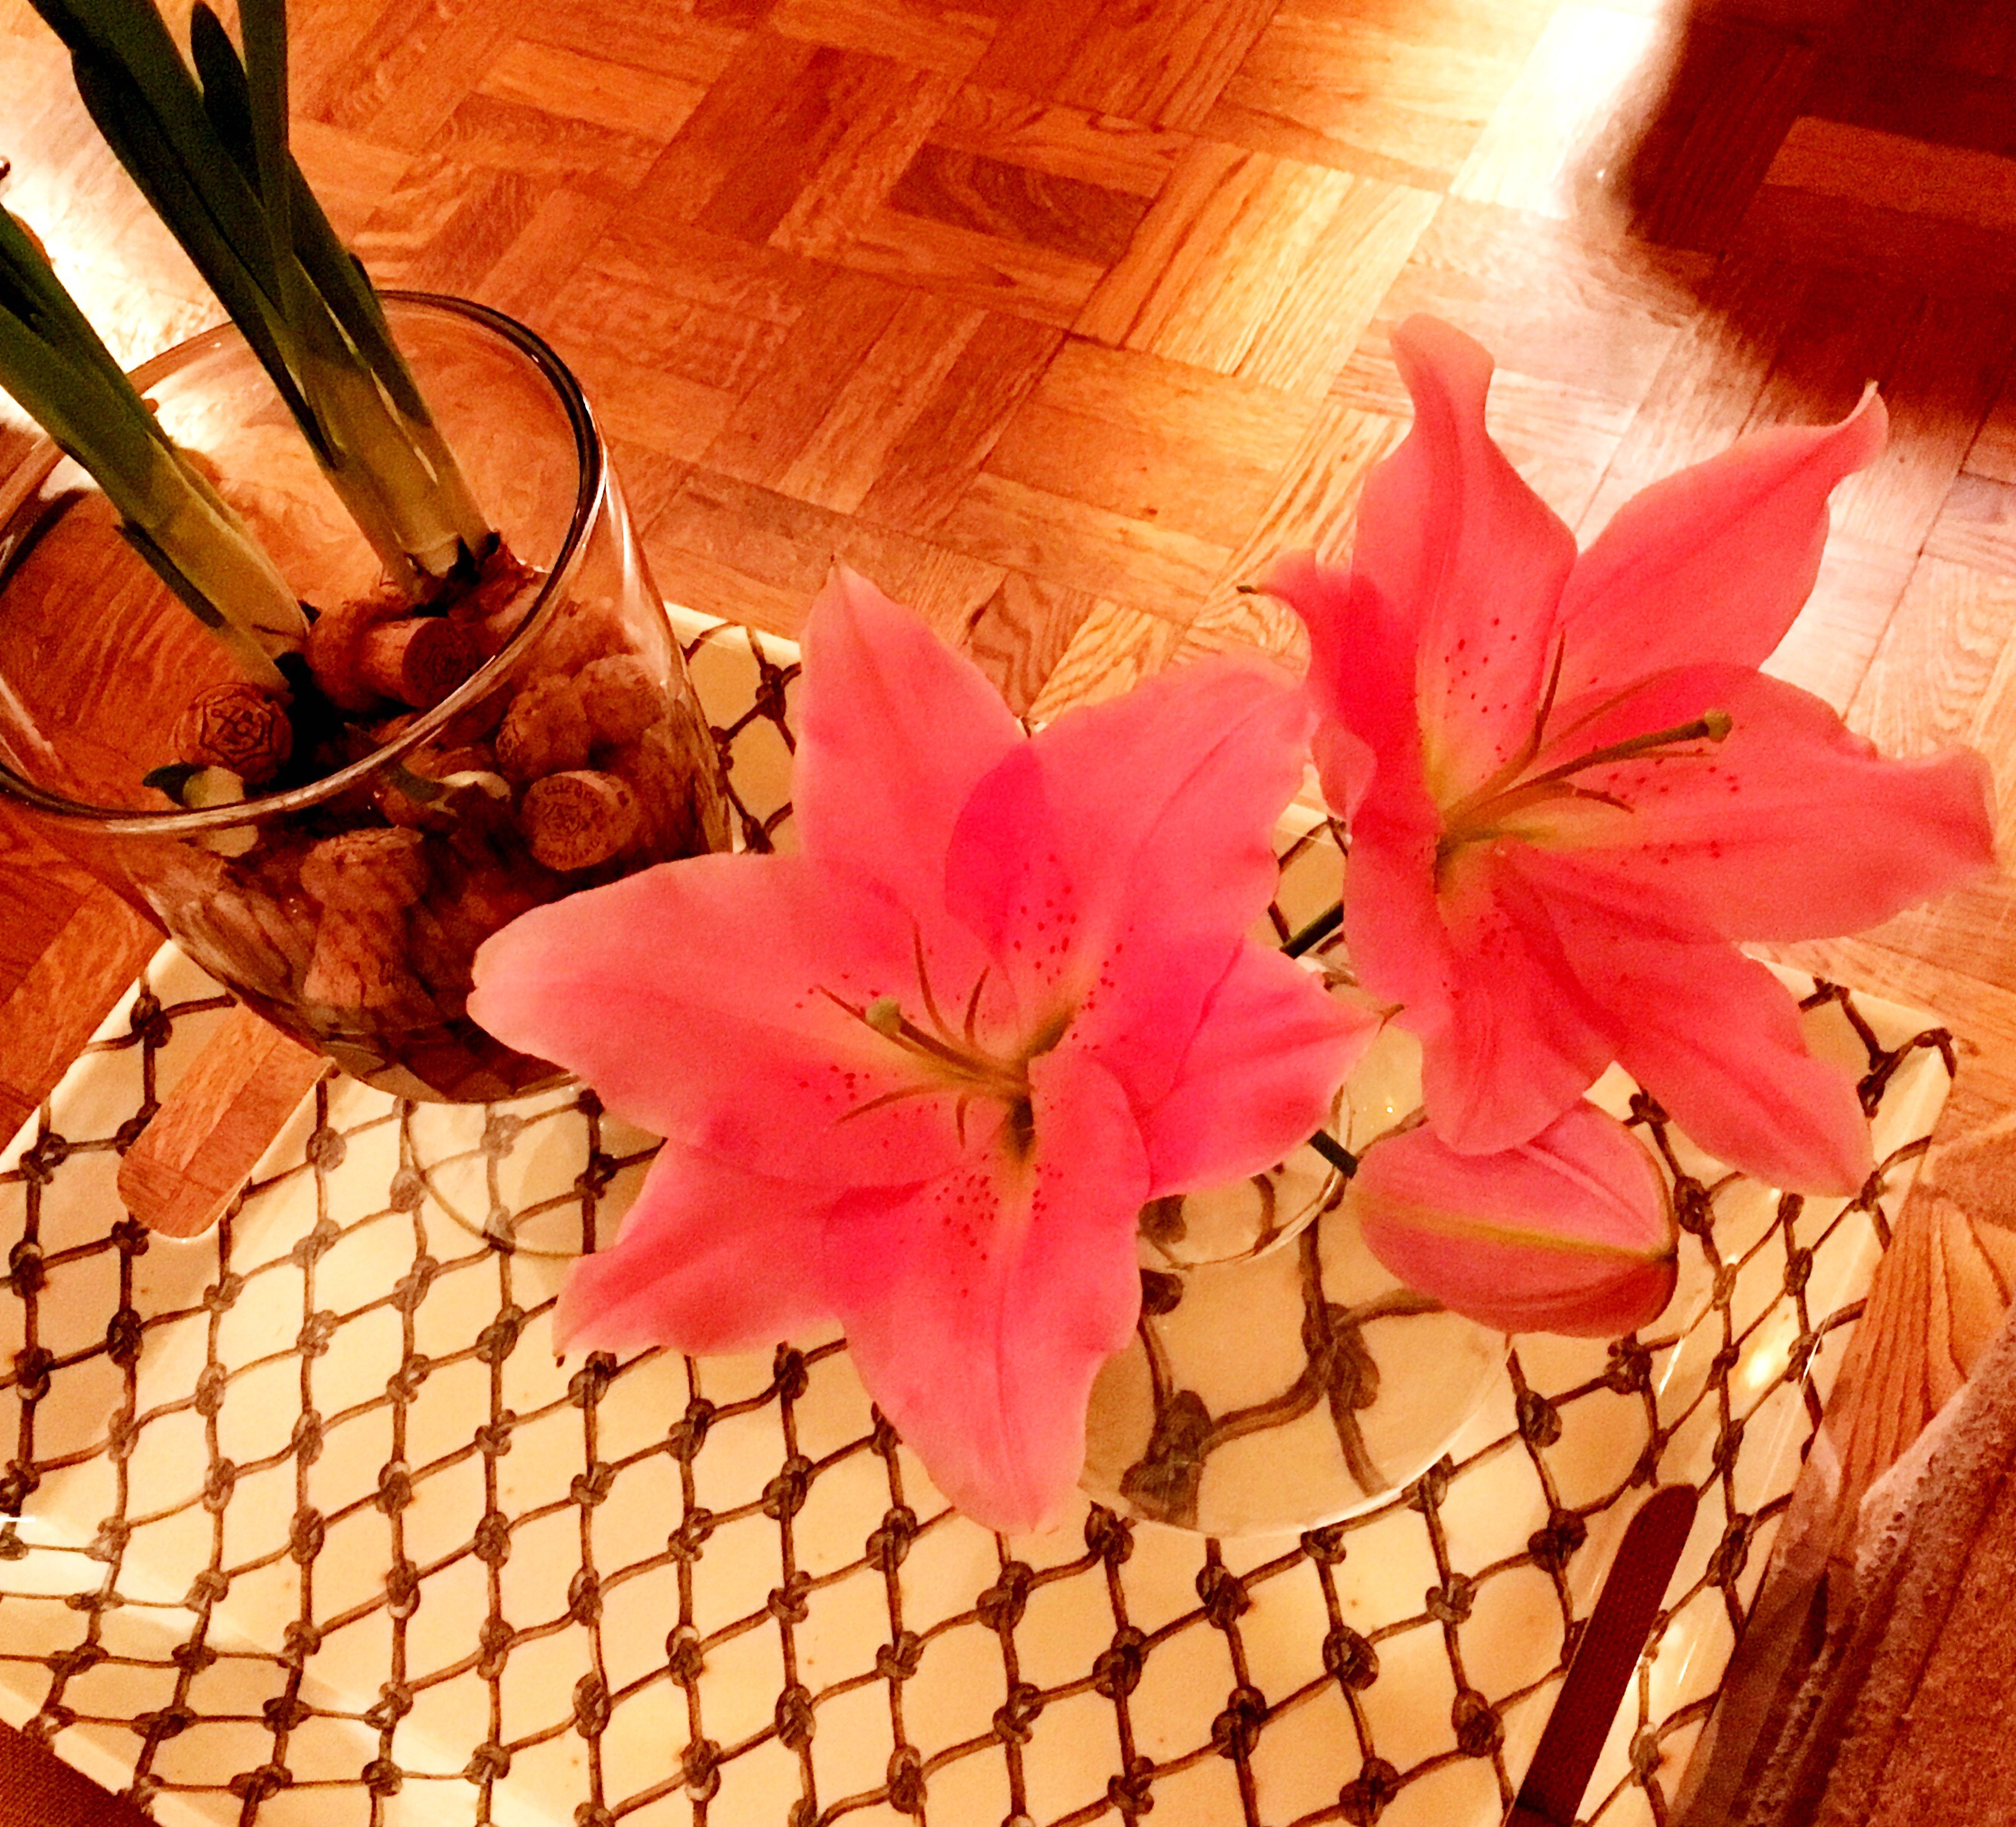 A lily flower friday ted kennedy watson i dotted them about the rooms in single stem vases to spread the love around thought they had a lovely flower friday vibe to them as we head into the izmirmasajfo